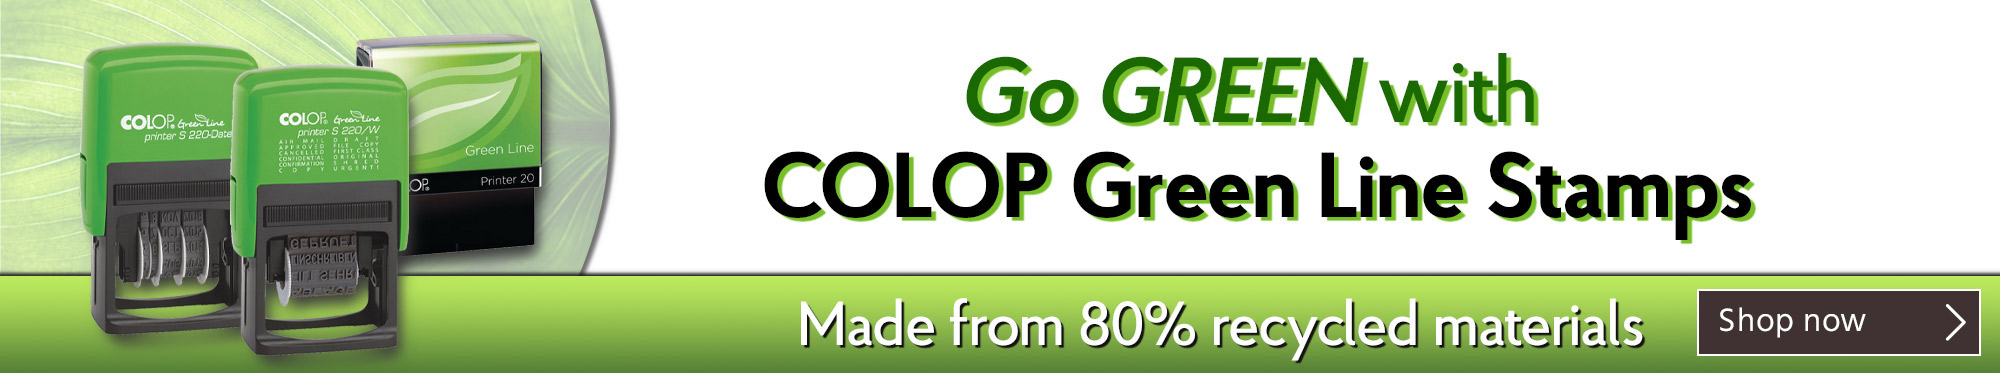 Go Green with COLOP Green Line Stamps